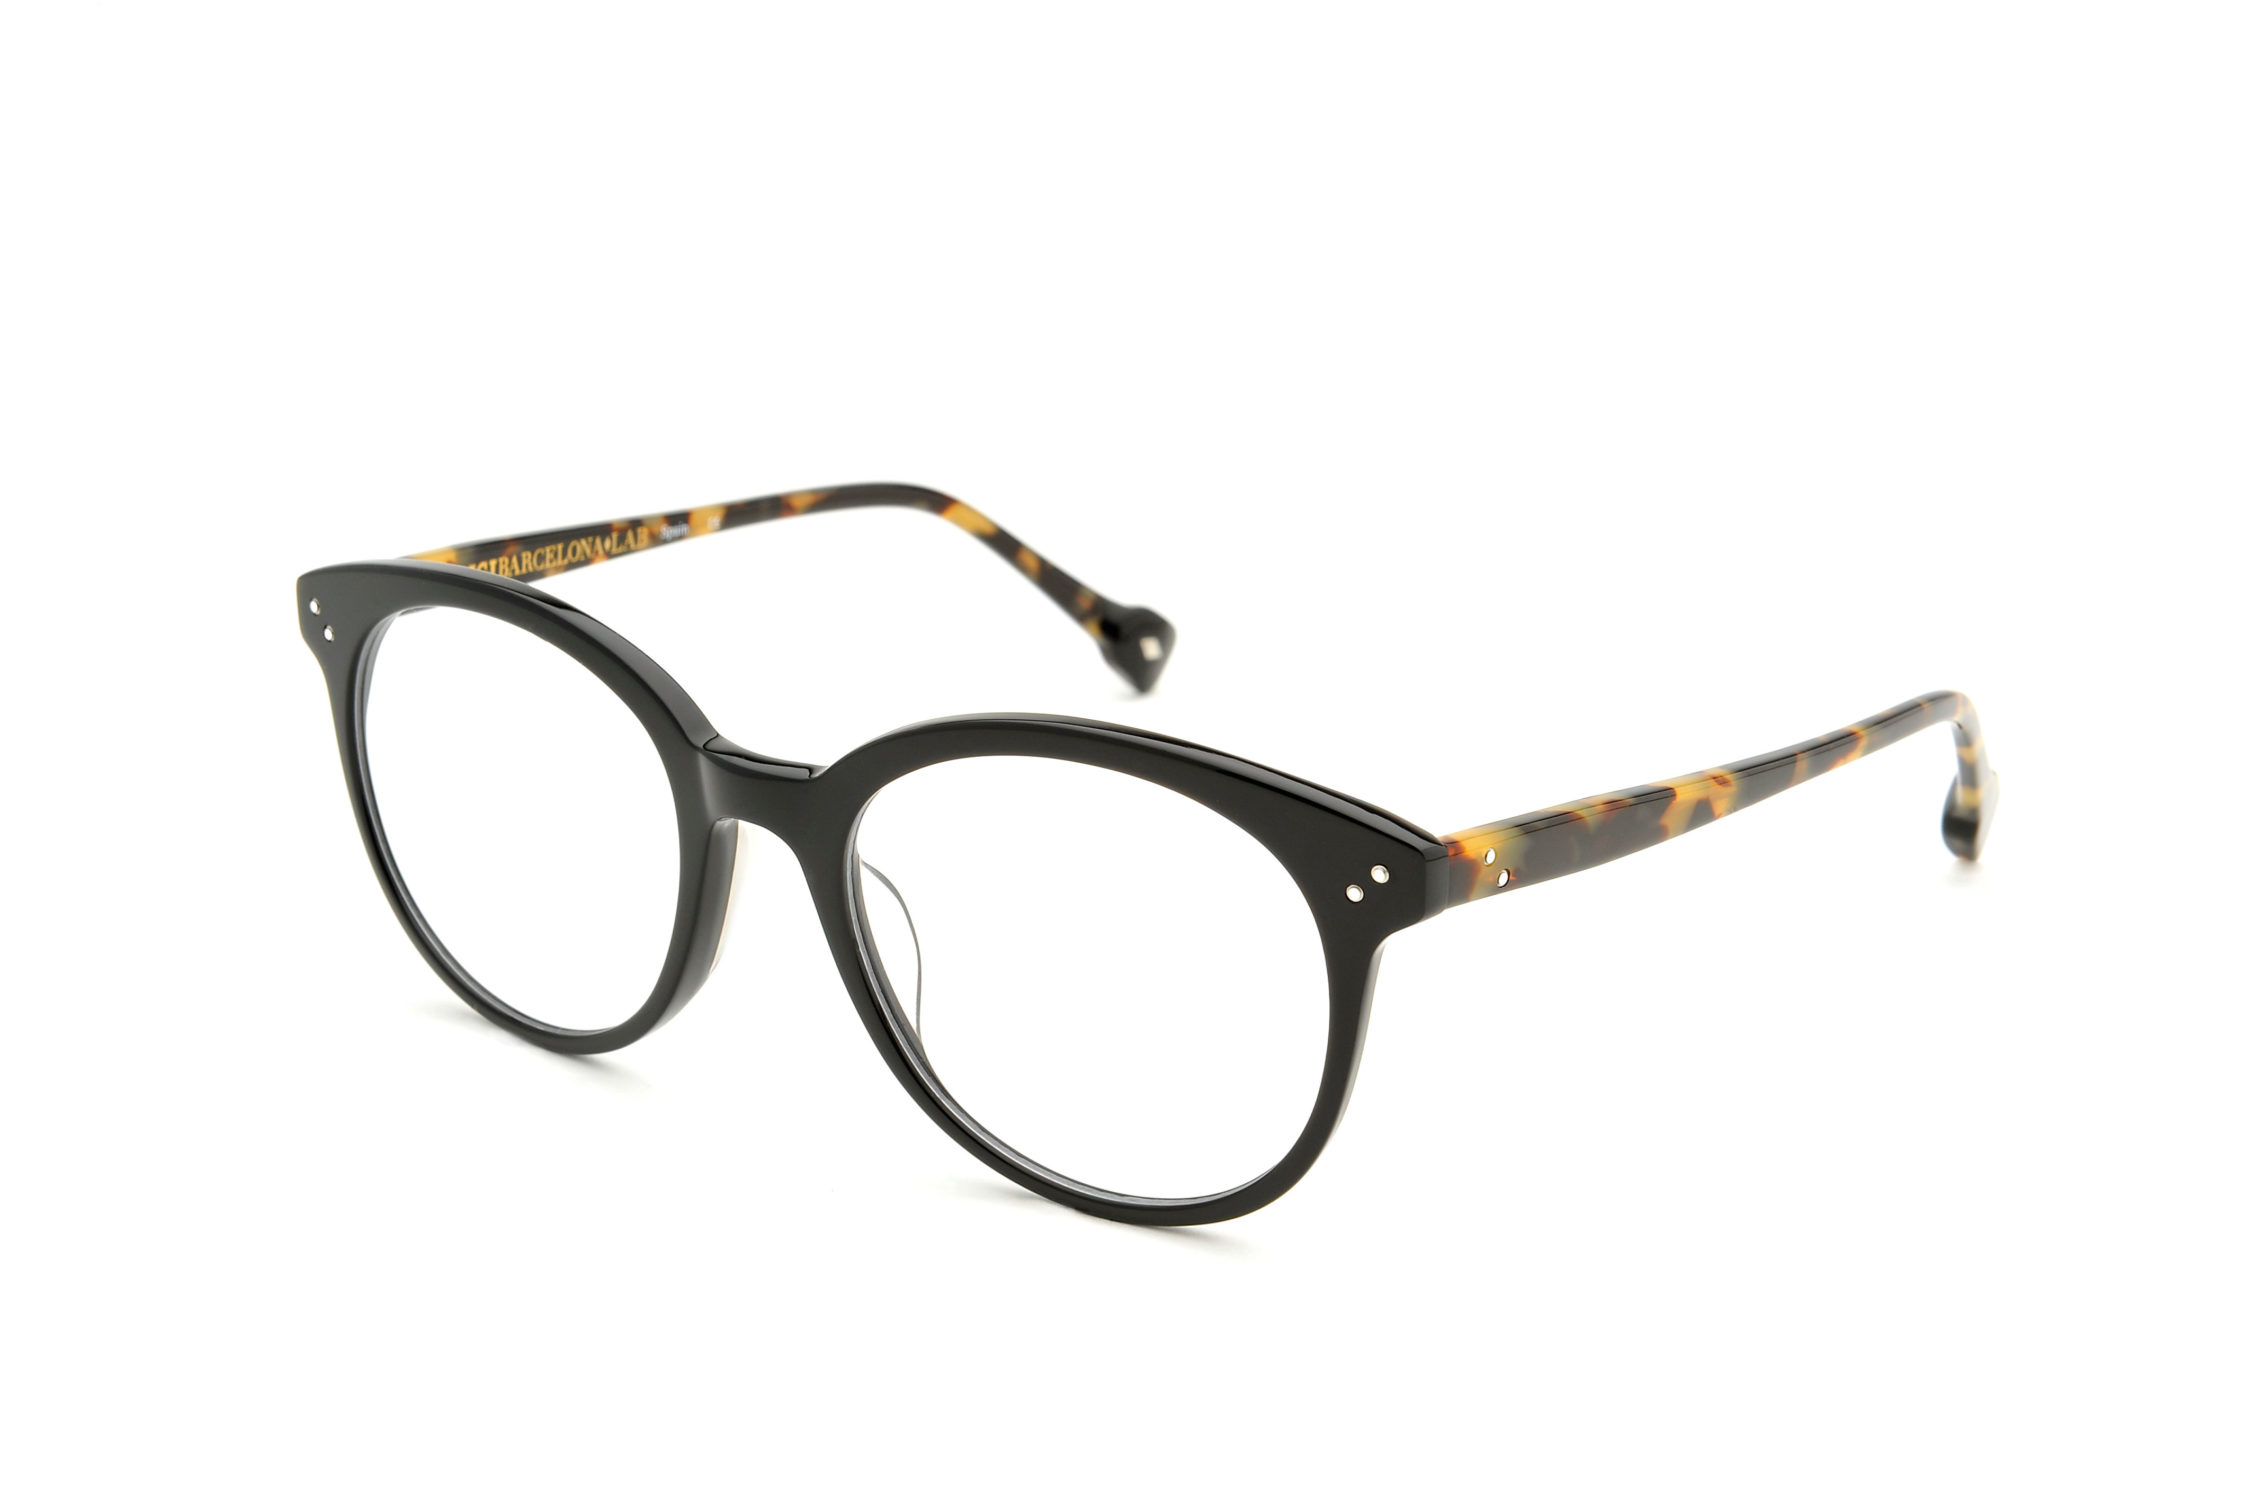 Mitra acetate rounded black sunglasses by GIGI Studios